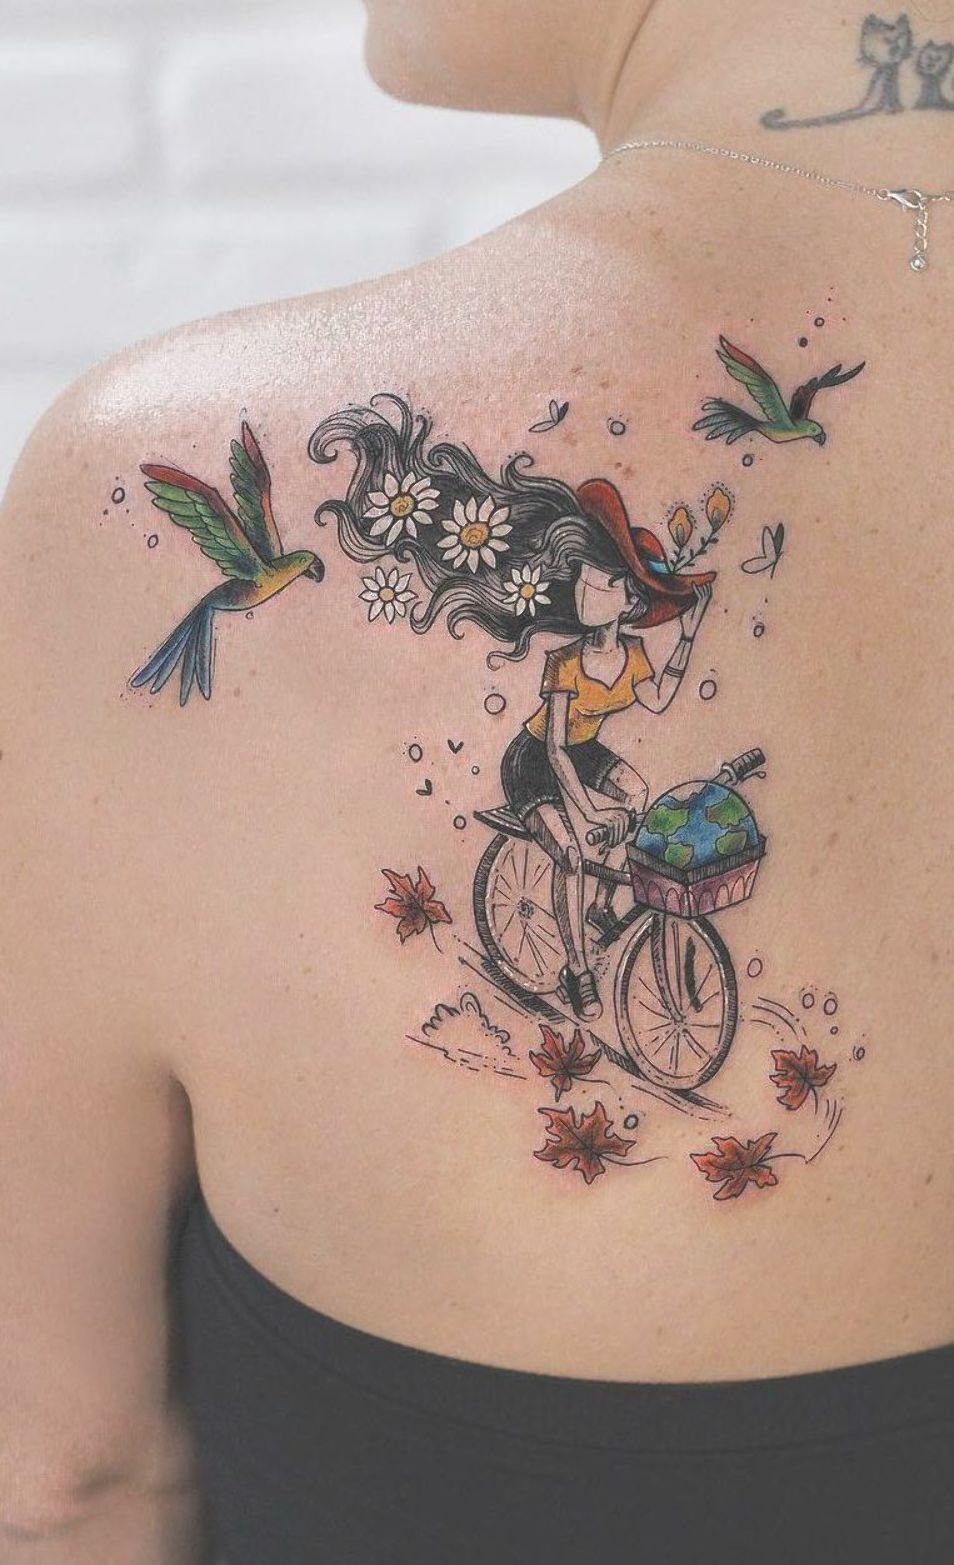 Magical Illustrative Tattoo C Tattoo Artist Robson Carvalho Unusual Tattoo Body Art Tattoos Tattoo Artists